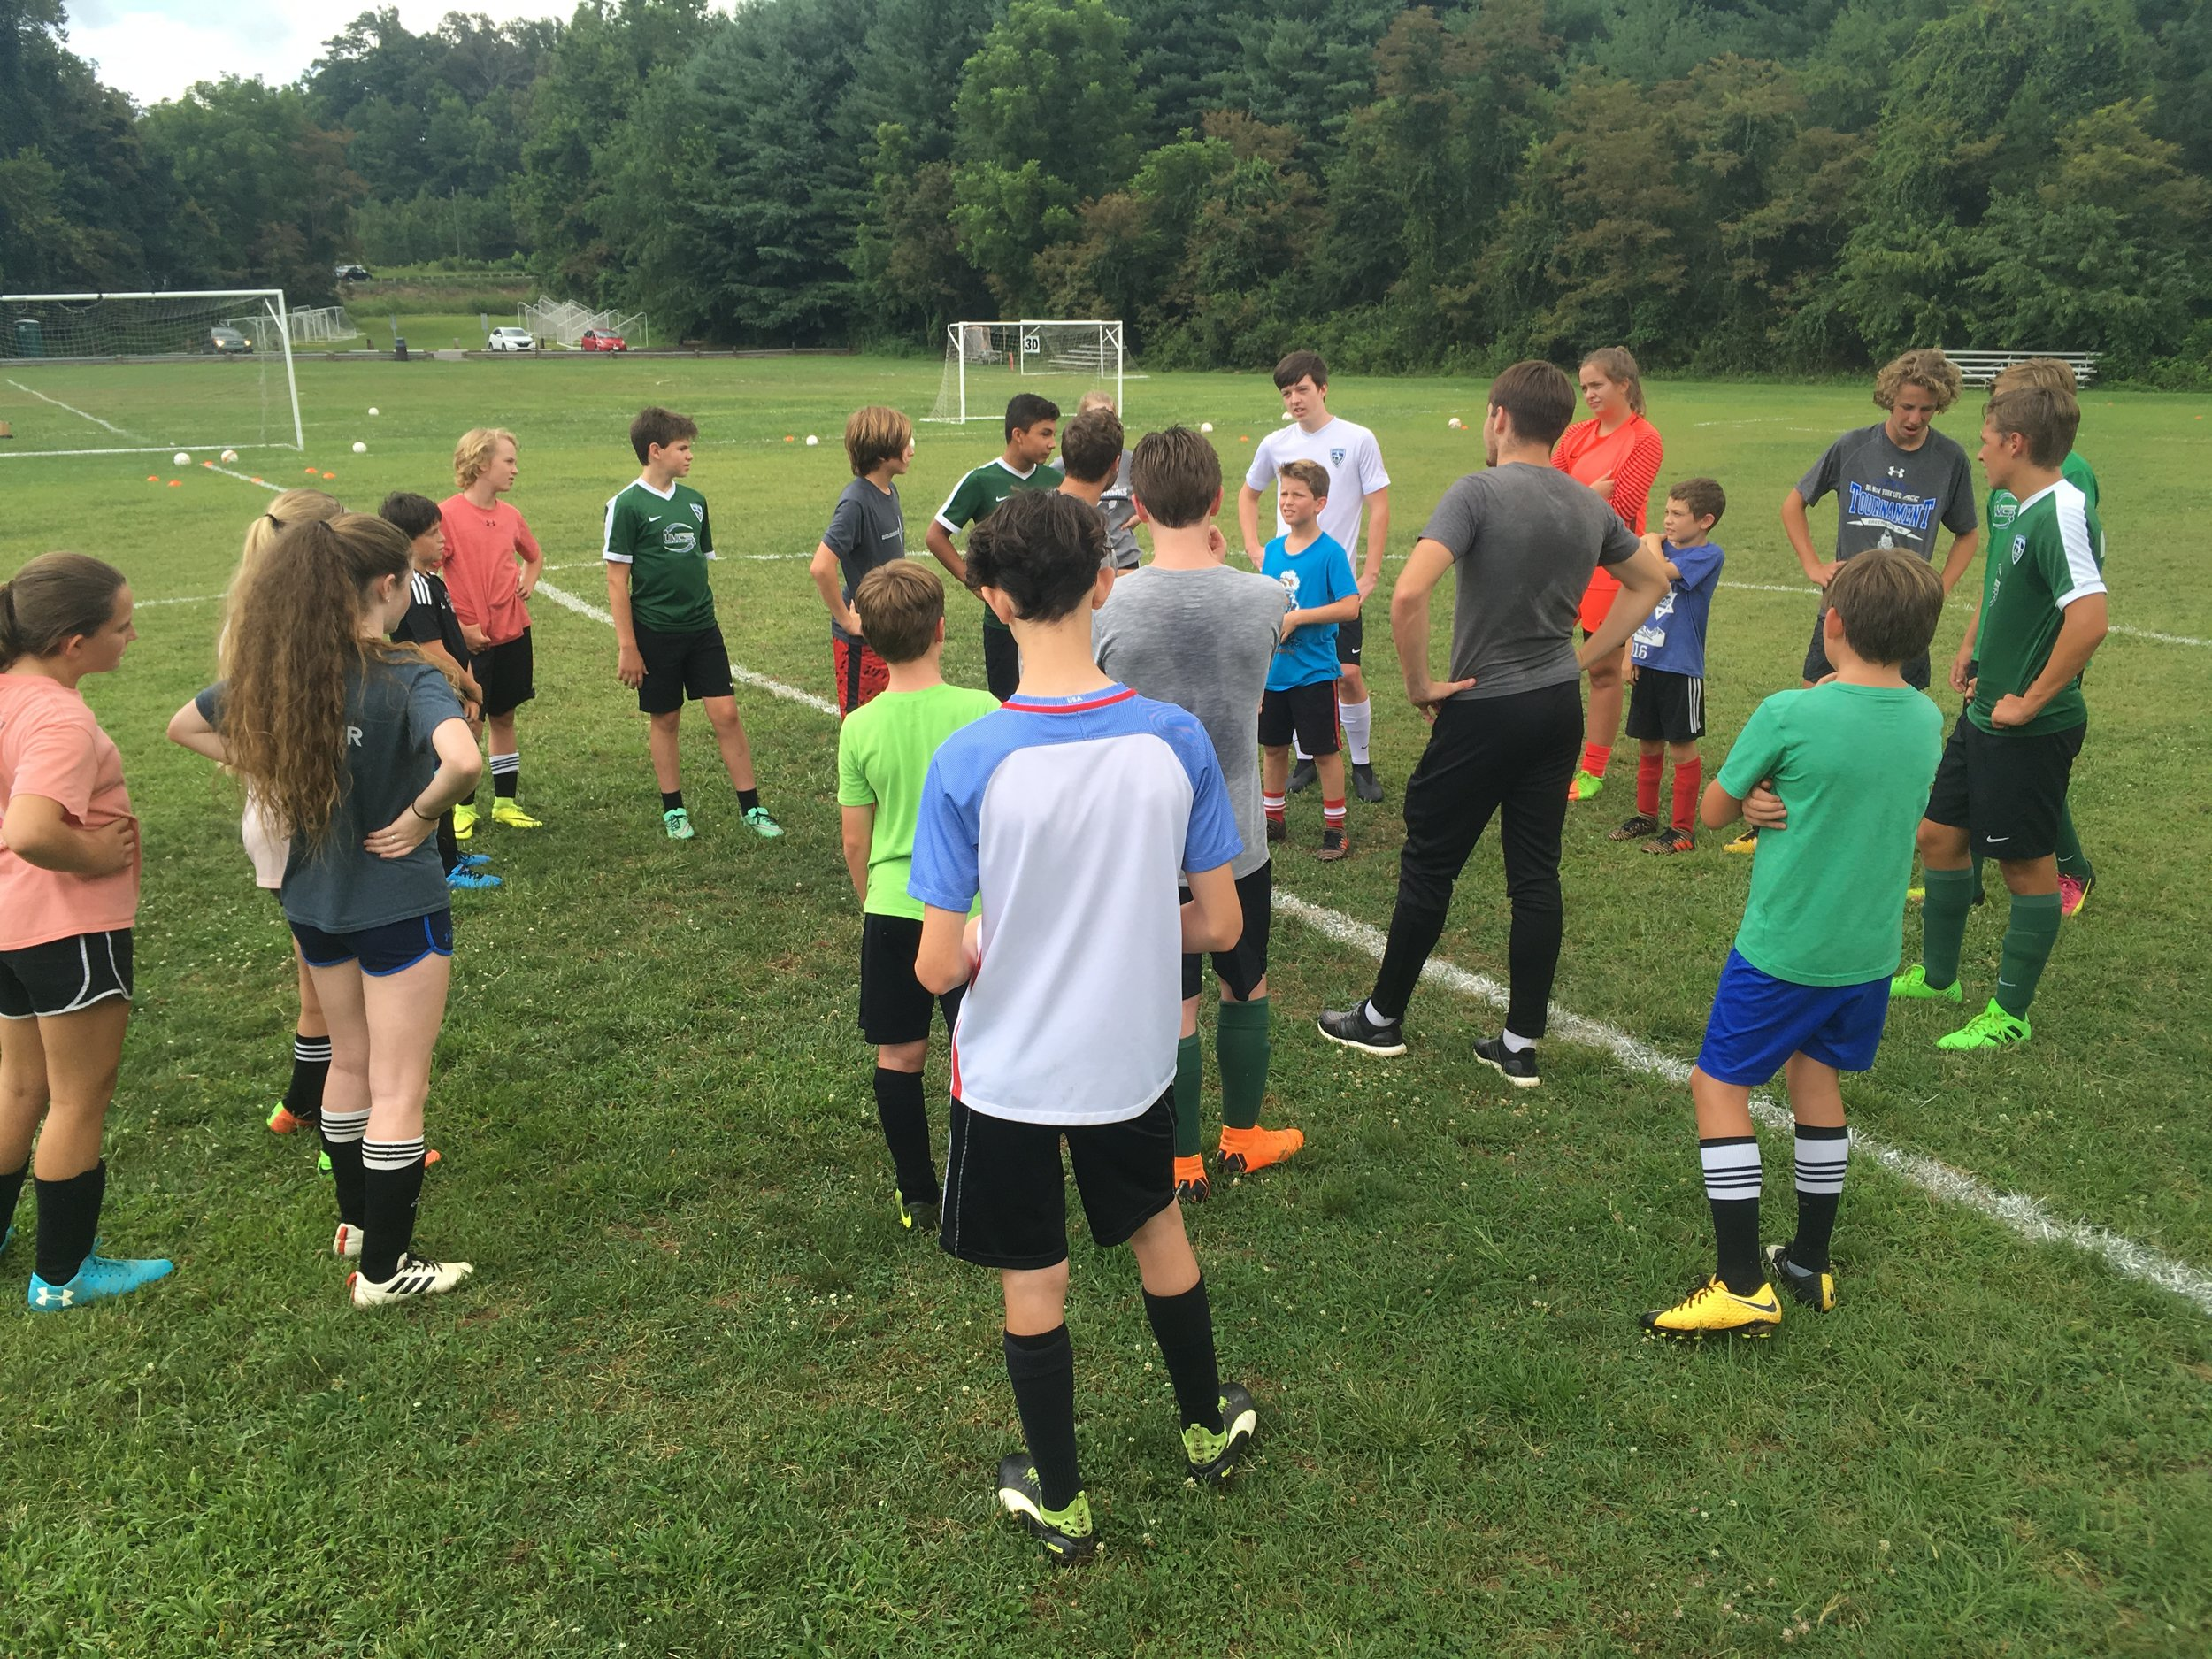 Three Day Camp - Each camp day will feature different daily topics which will include a lot of technical work, possession based drills, and match like situations to create game realistic scenarios. The camps will help keep players active during the summer, whilst preparing them for their Fall season. Groups will be decided based on age/ability. Limited spots available.Dates - 6/11, 6/12, 6/13Location - Asheville SchoolAges/Time - 9-17 @ 1-4pmPrice - Shield Players - $100. Non-Shield Players - $150. Includes Shield Camp Shirt